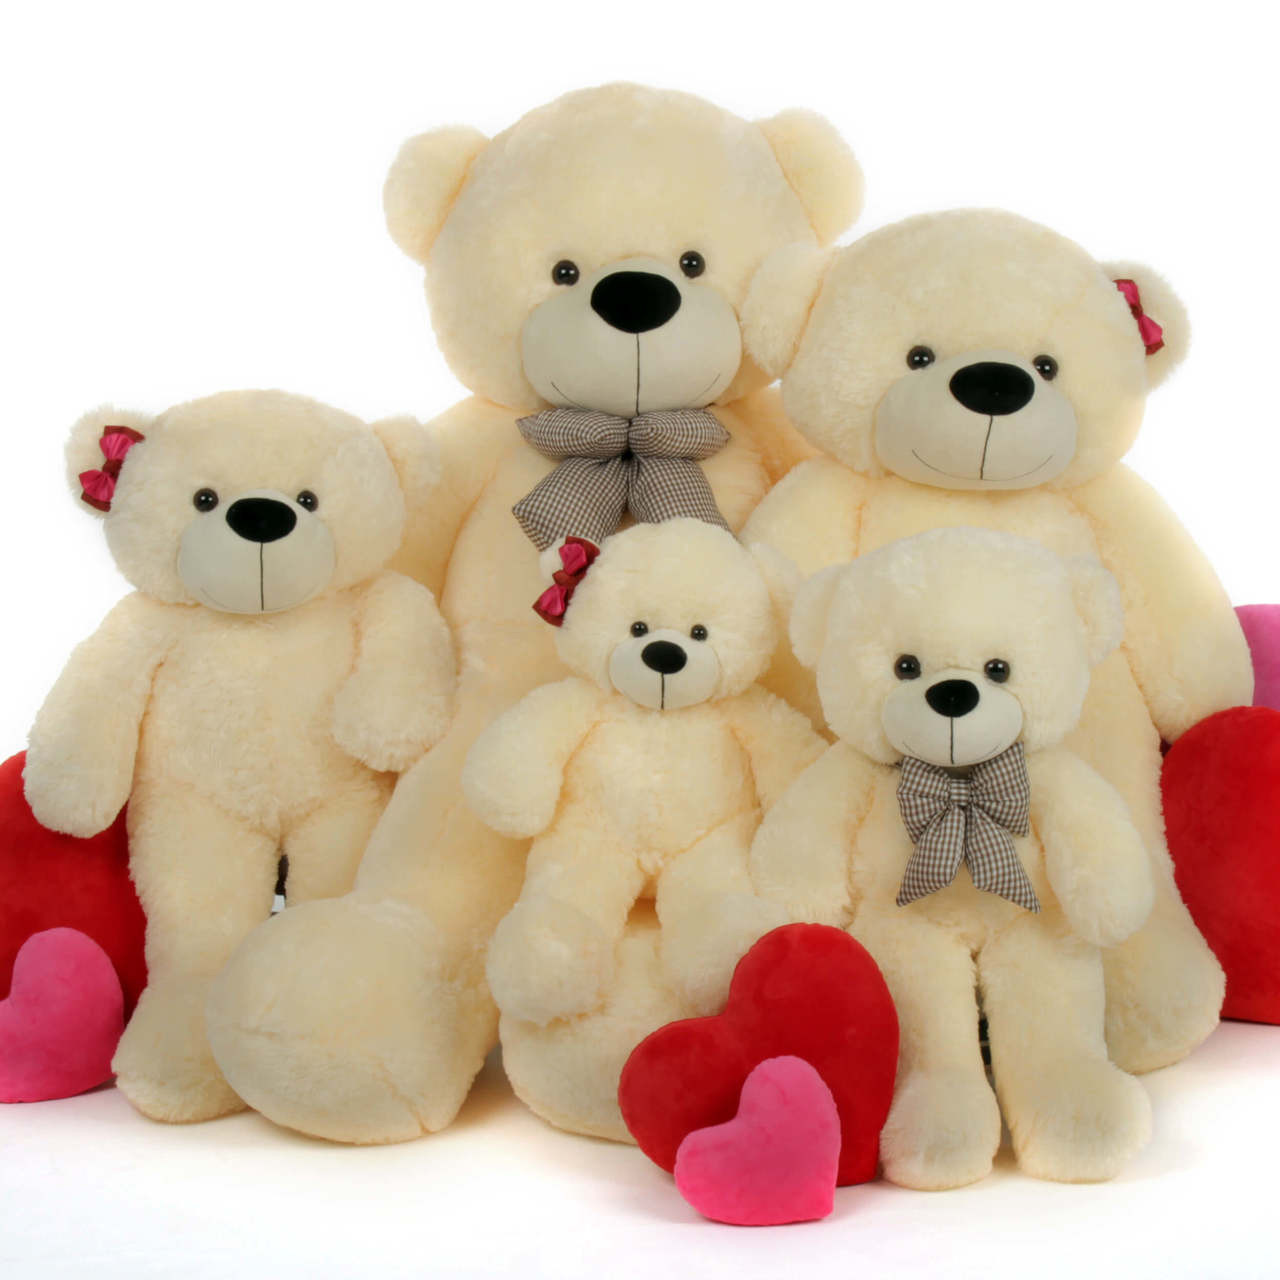 Cozy Cuddles 30 Big Plush Cream Teddy Bear Giant Teddy